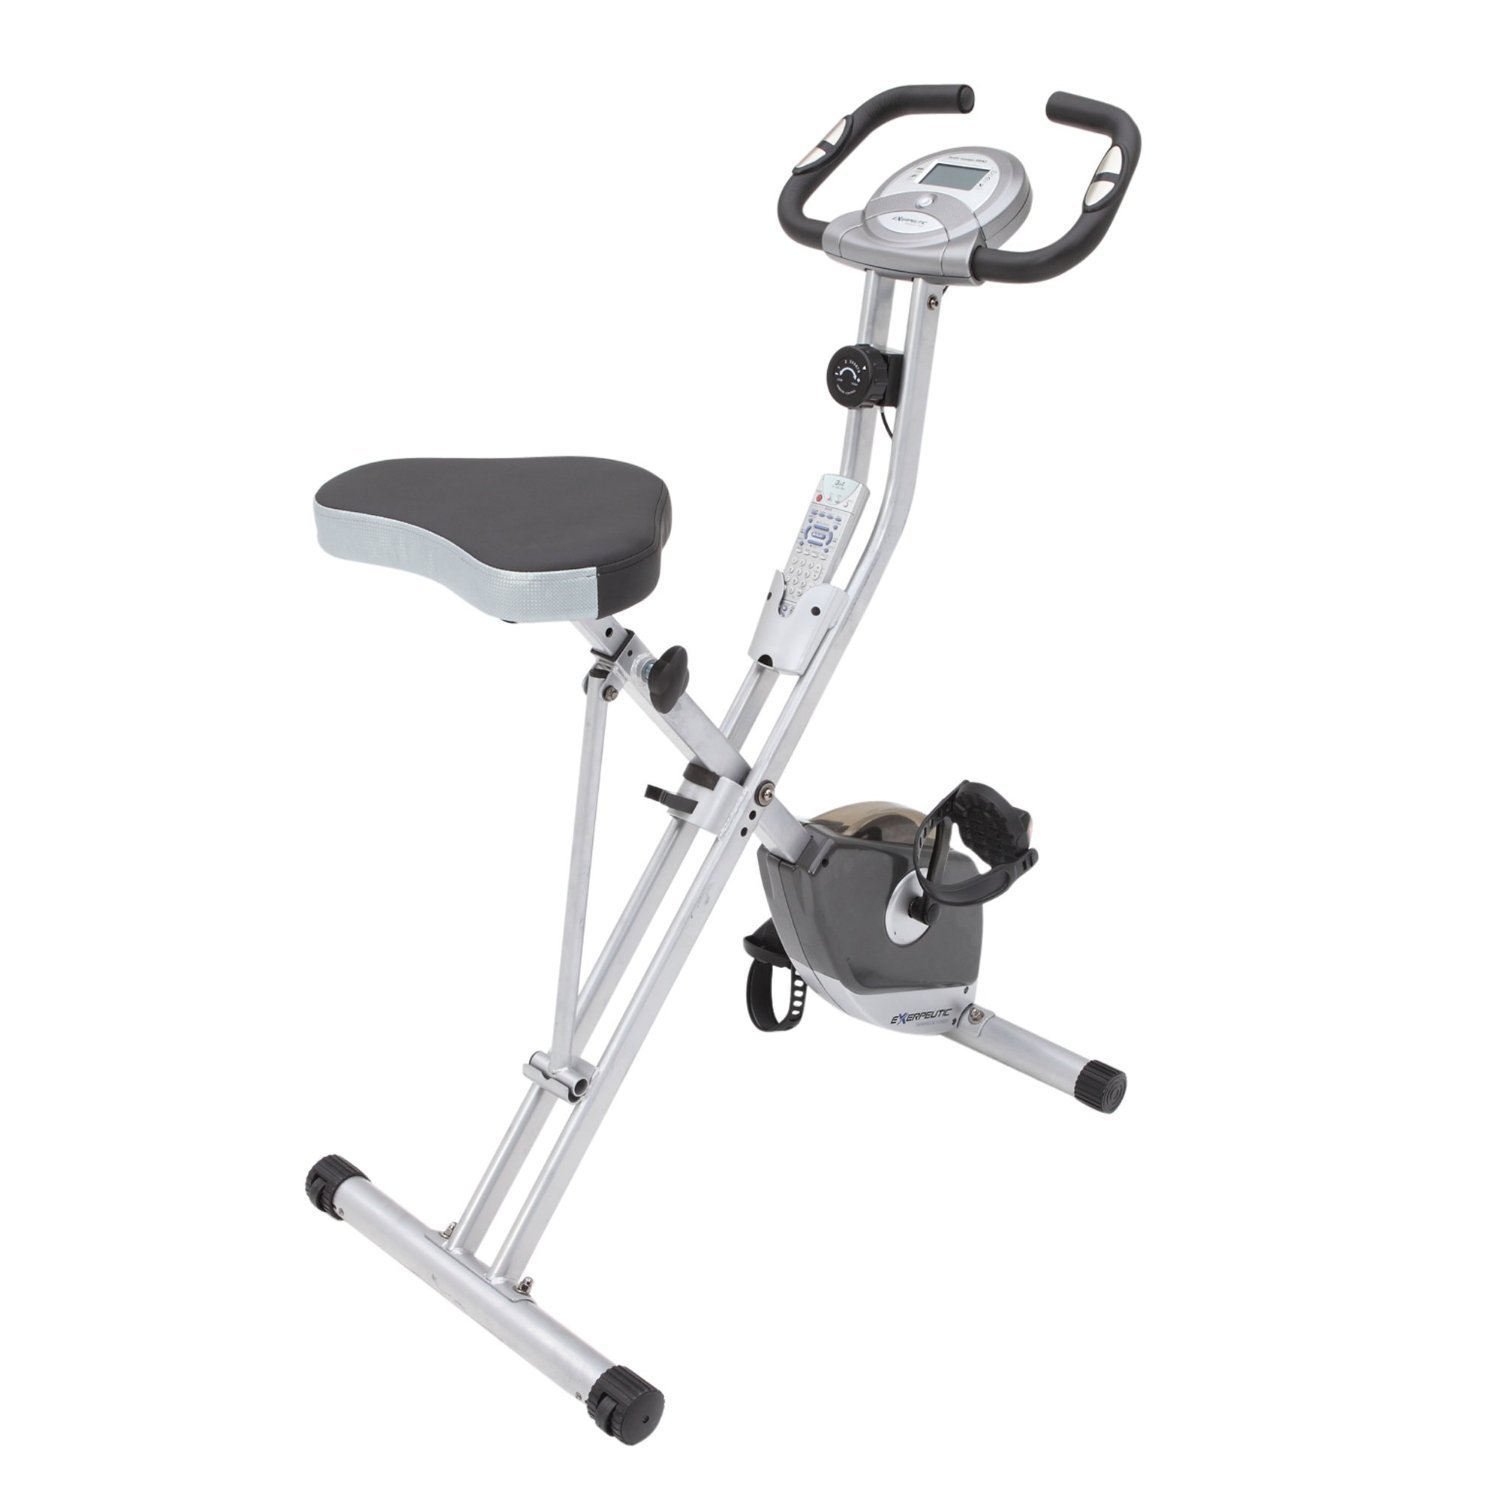 5 Best Upright Exercise Bikes 2019